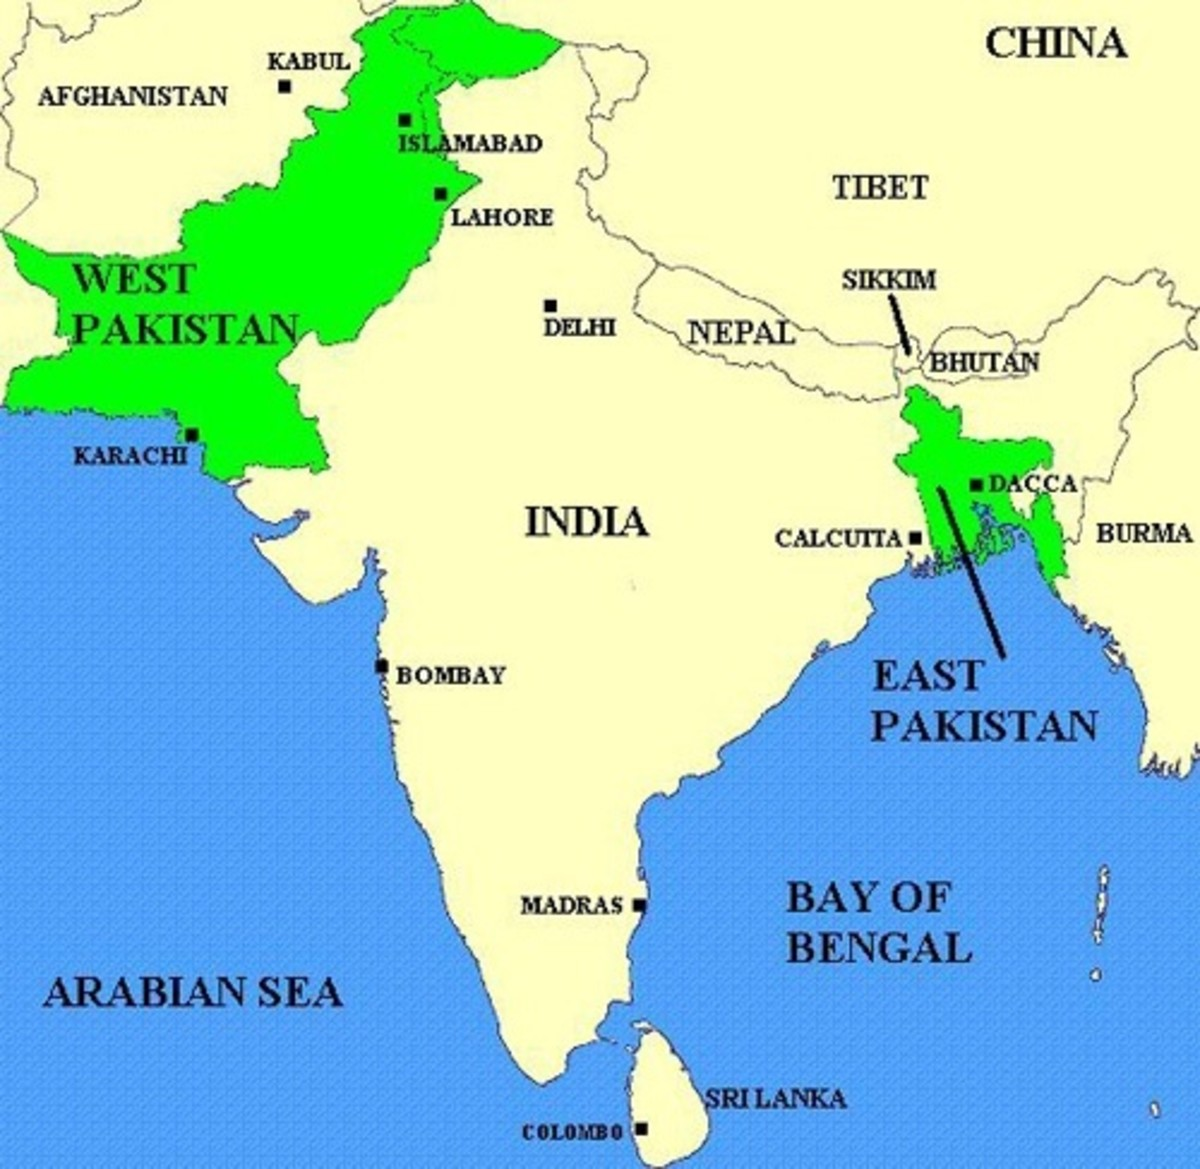 Map highlighting the geographical separation of East & West Pakistan